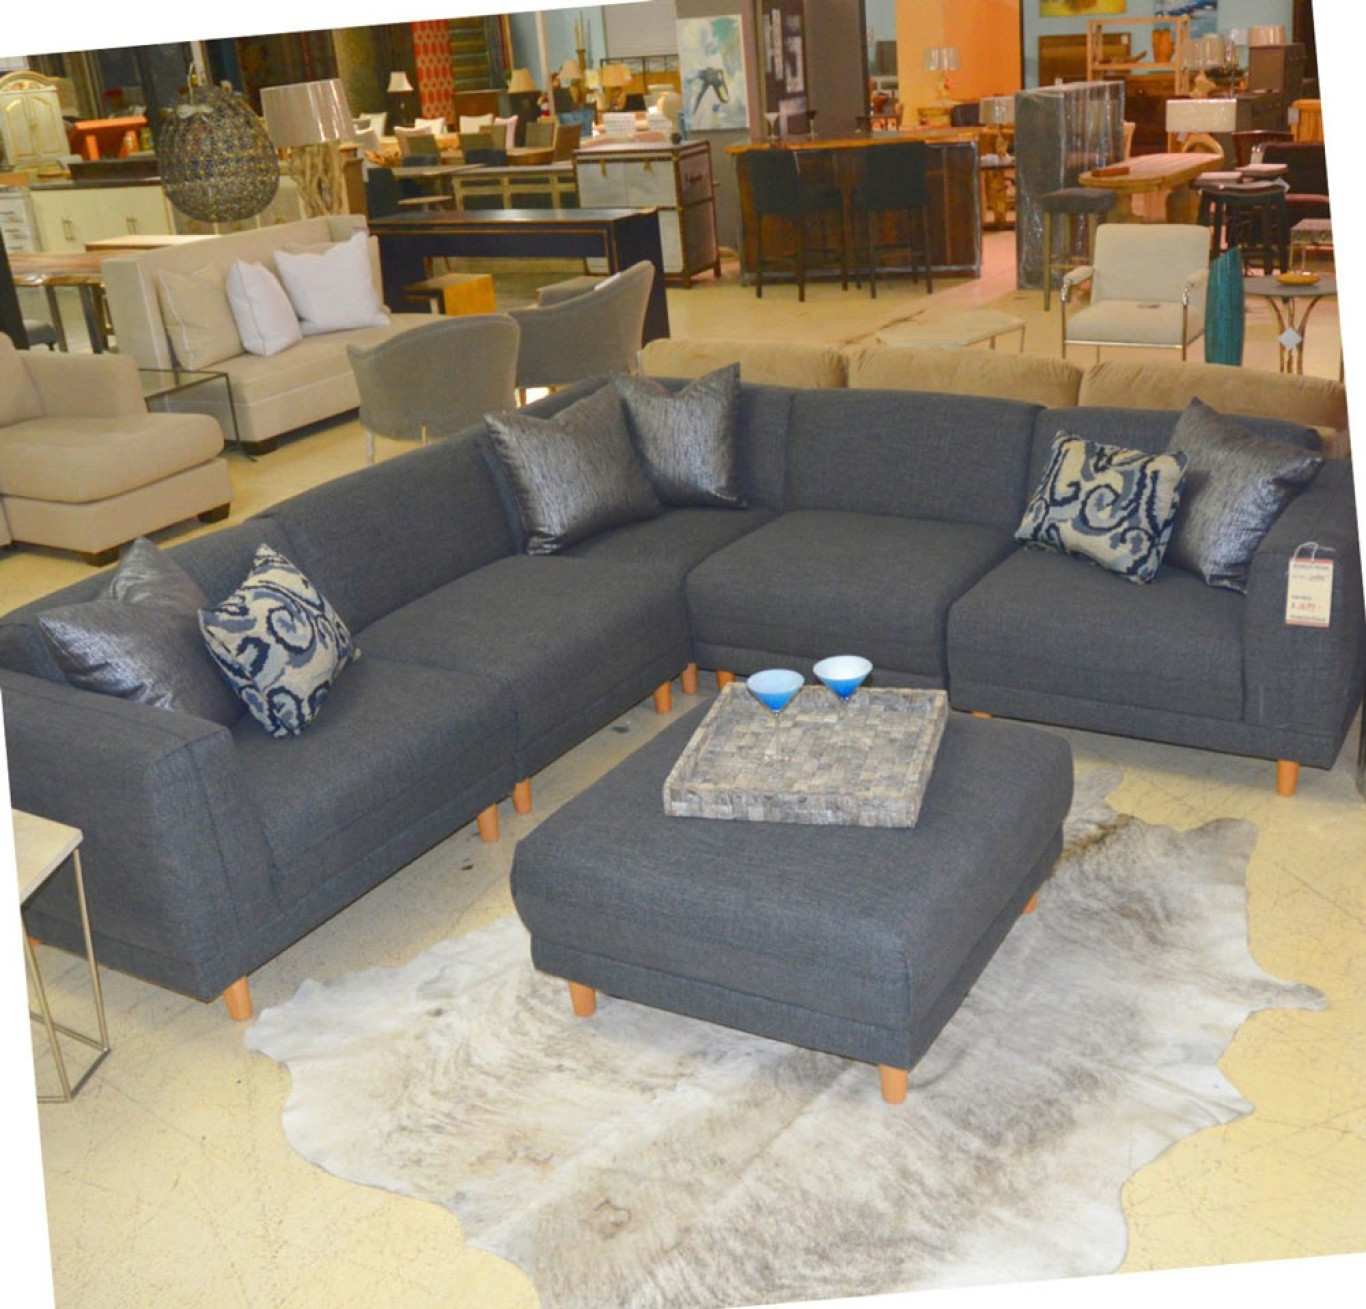 Homemakers Furniture Des Moines Iowa Throughout Des Moines Ia Sectional Sofas (View 2 of 10)